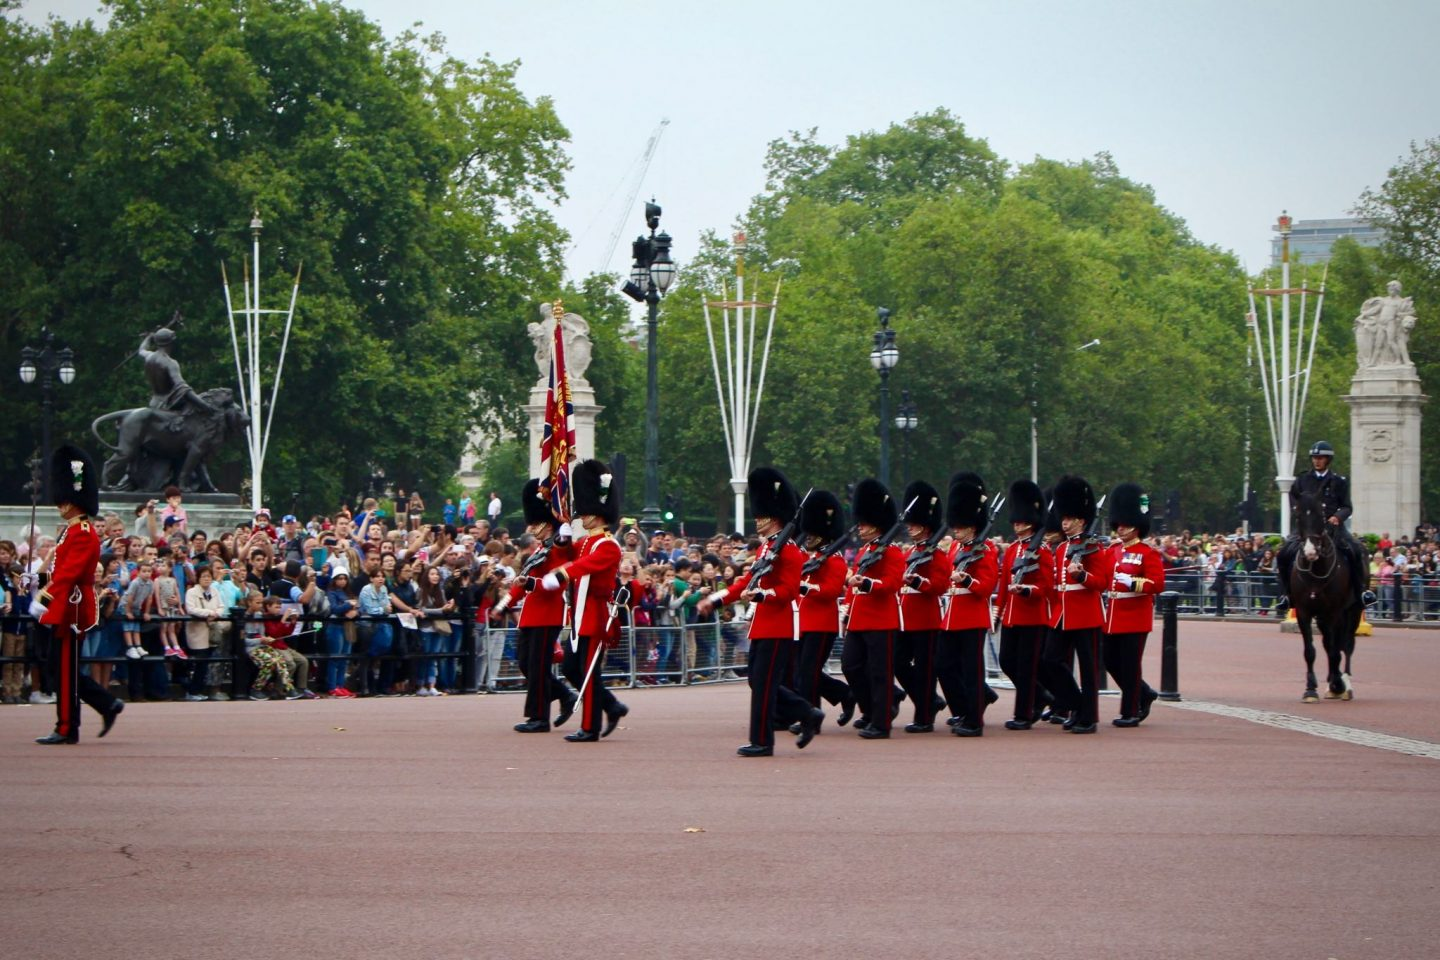 Buckingham Palace Changing of the Guards | 7-day London Itinerary | The Spectacular Adventurer